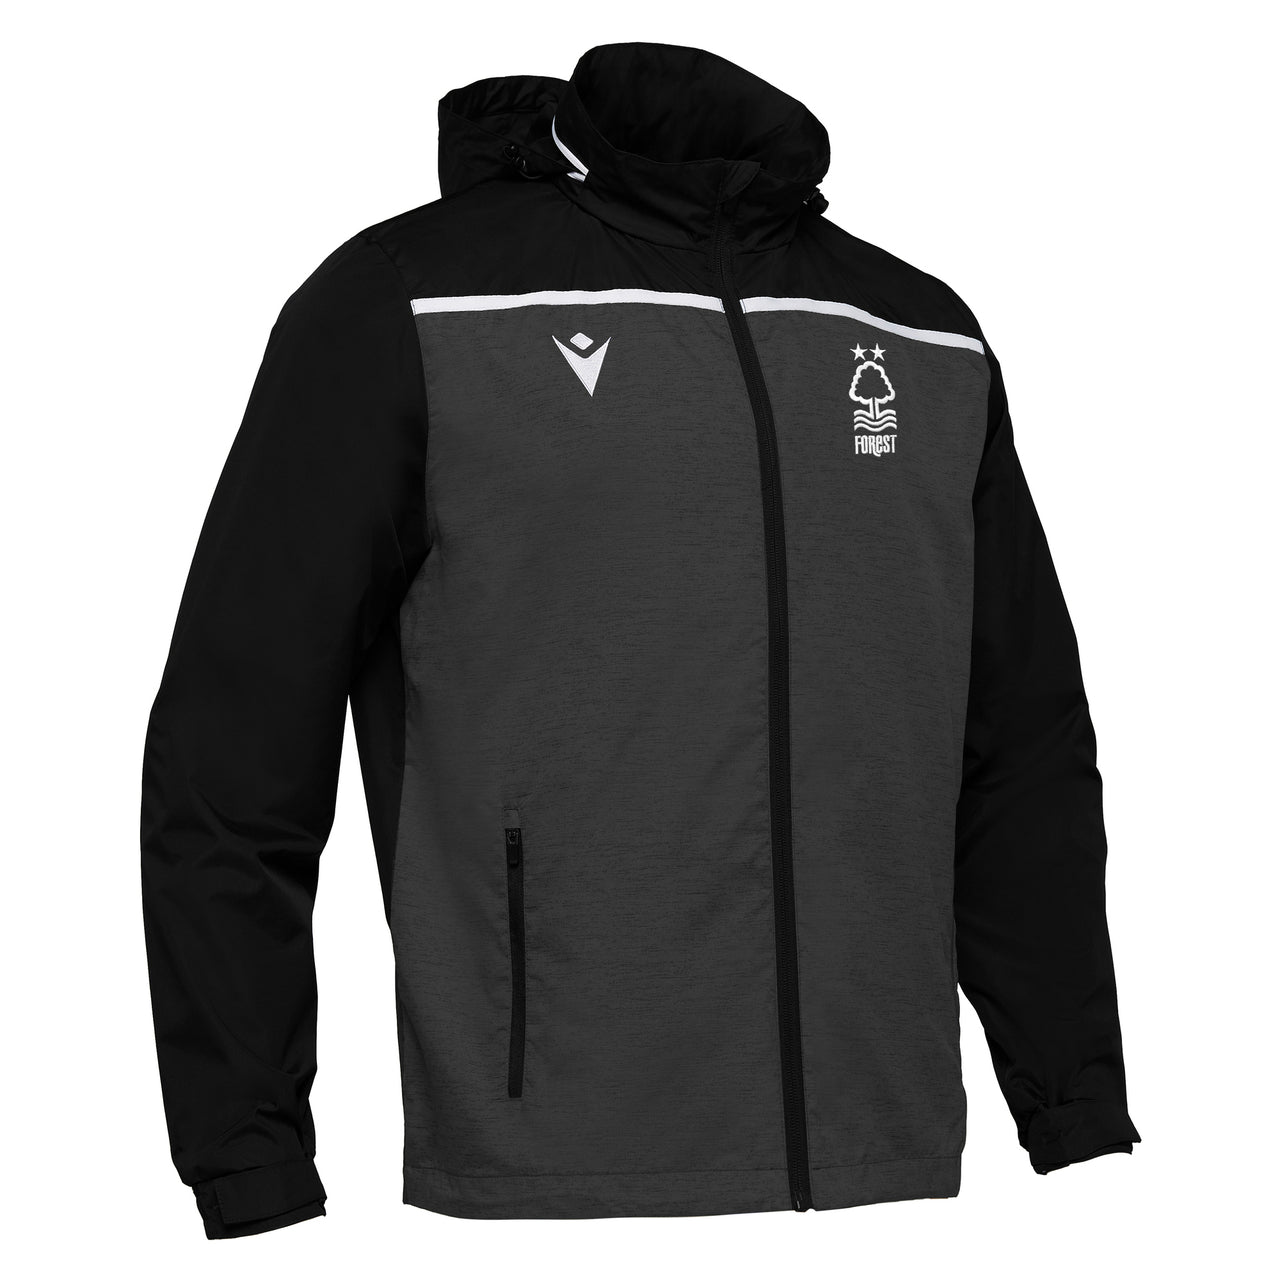 NFFC Mens Black Tully Windbreaker